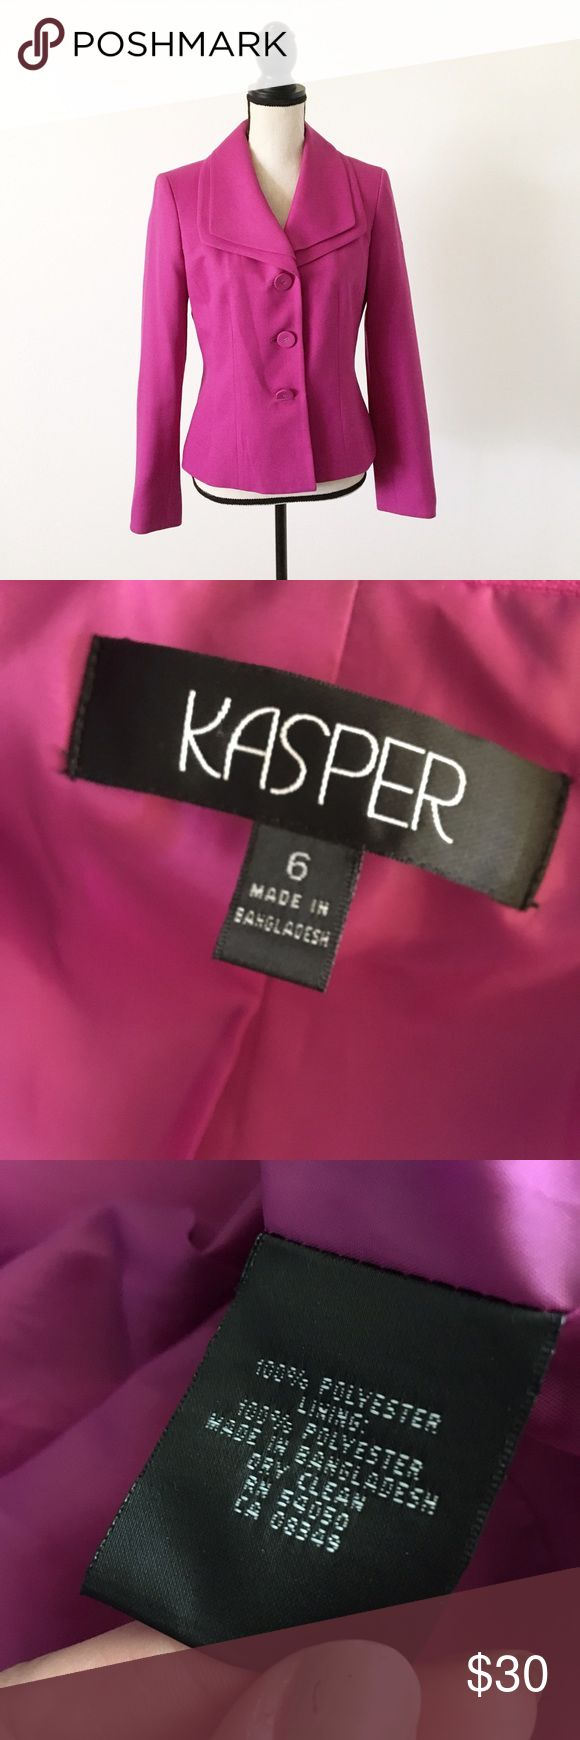 Kasper Hot Pink Blazer In like new condition, very classy and an amazing color. 25% off of bundles! Kasper Jackets & Coats Blazers